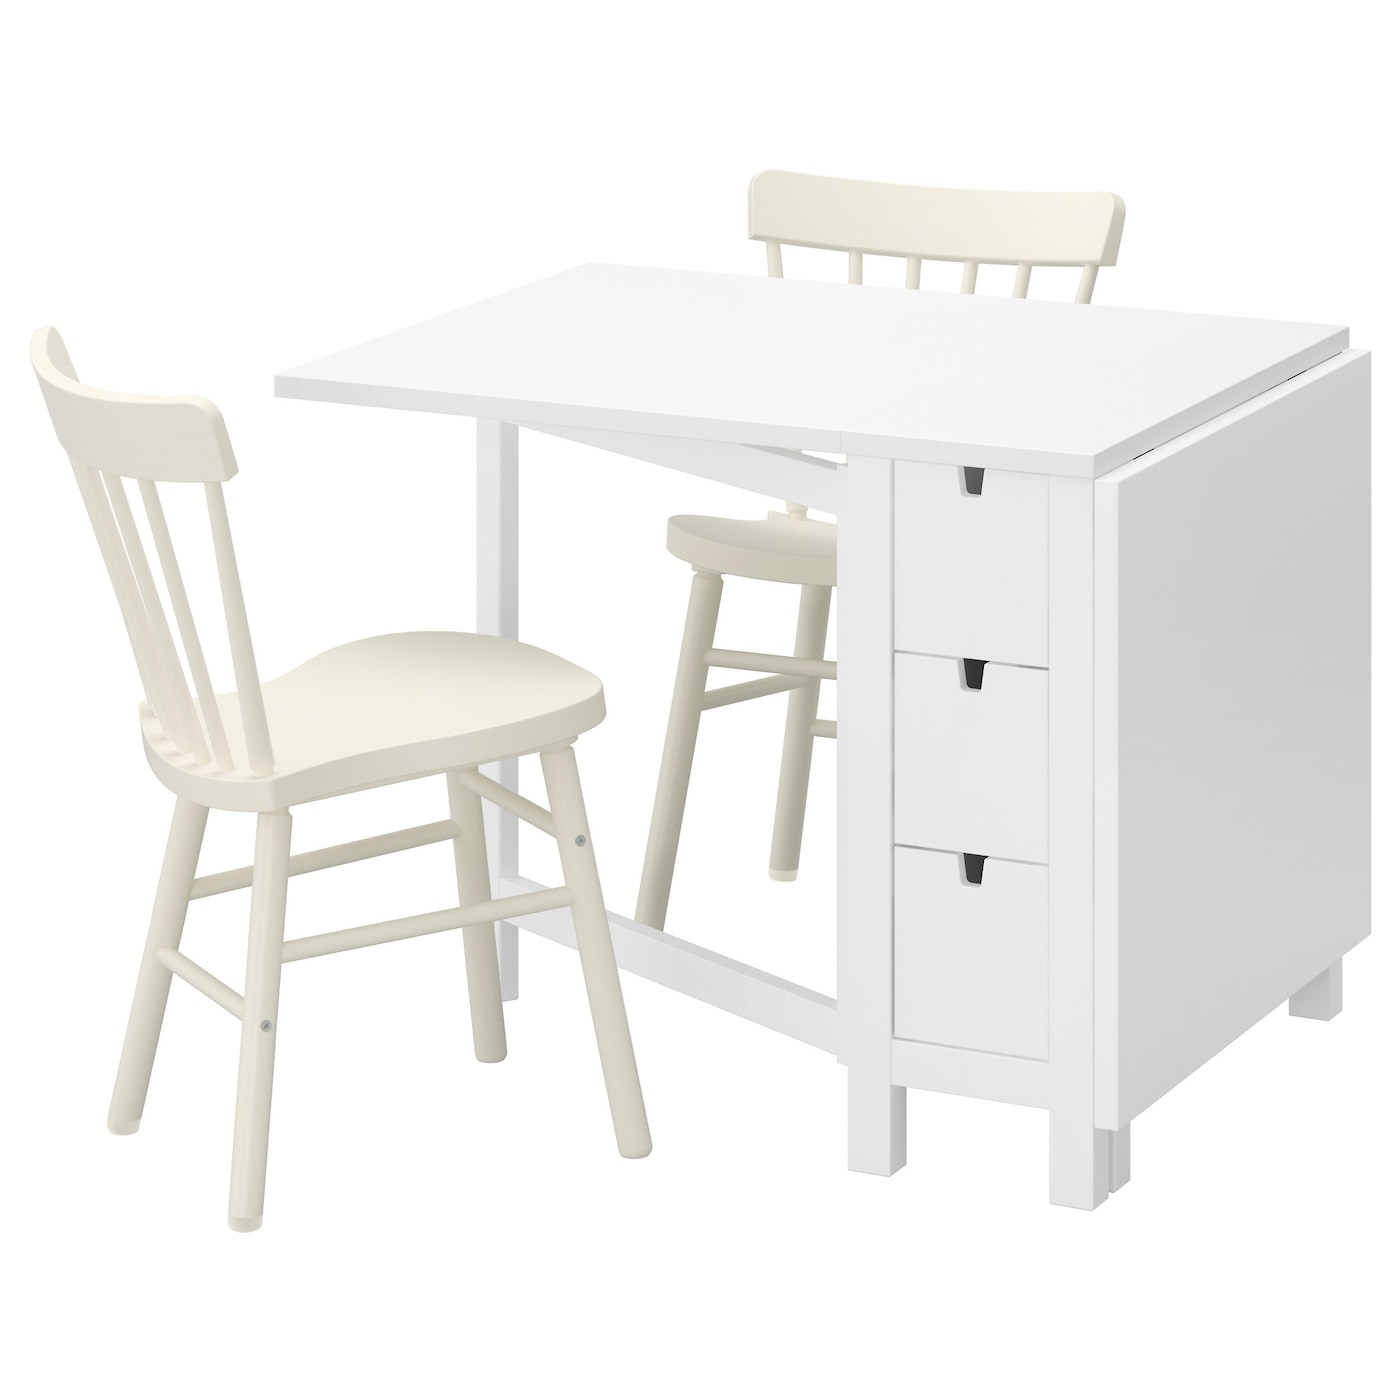 norden norraryd table and 2 chairs white white 89 cm ikea. Black Bedroom Furniture Sets. Home Design Ideas